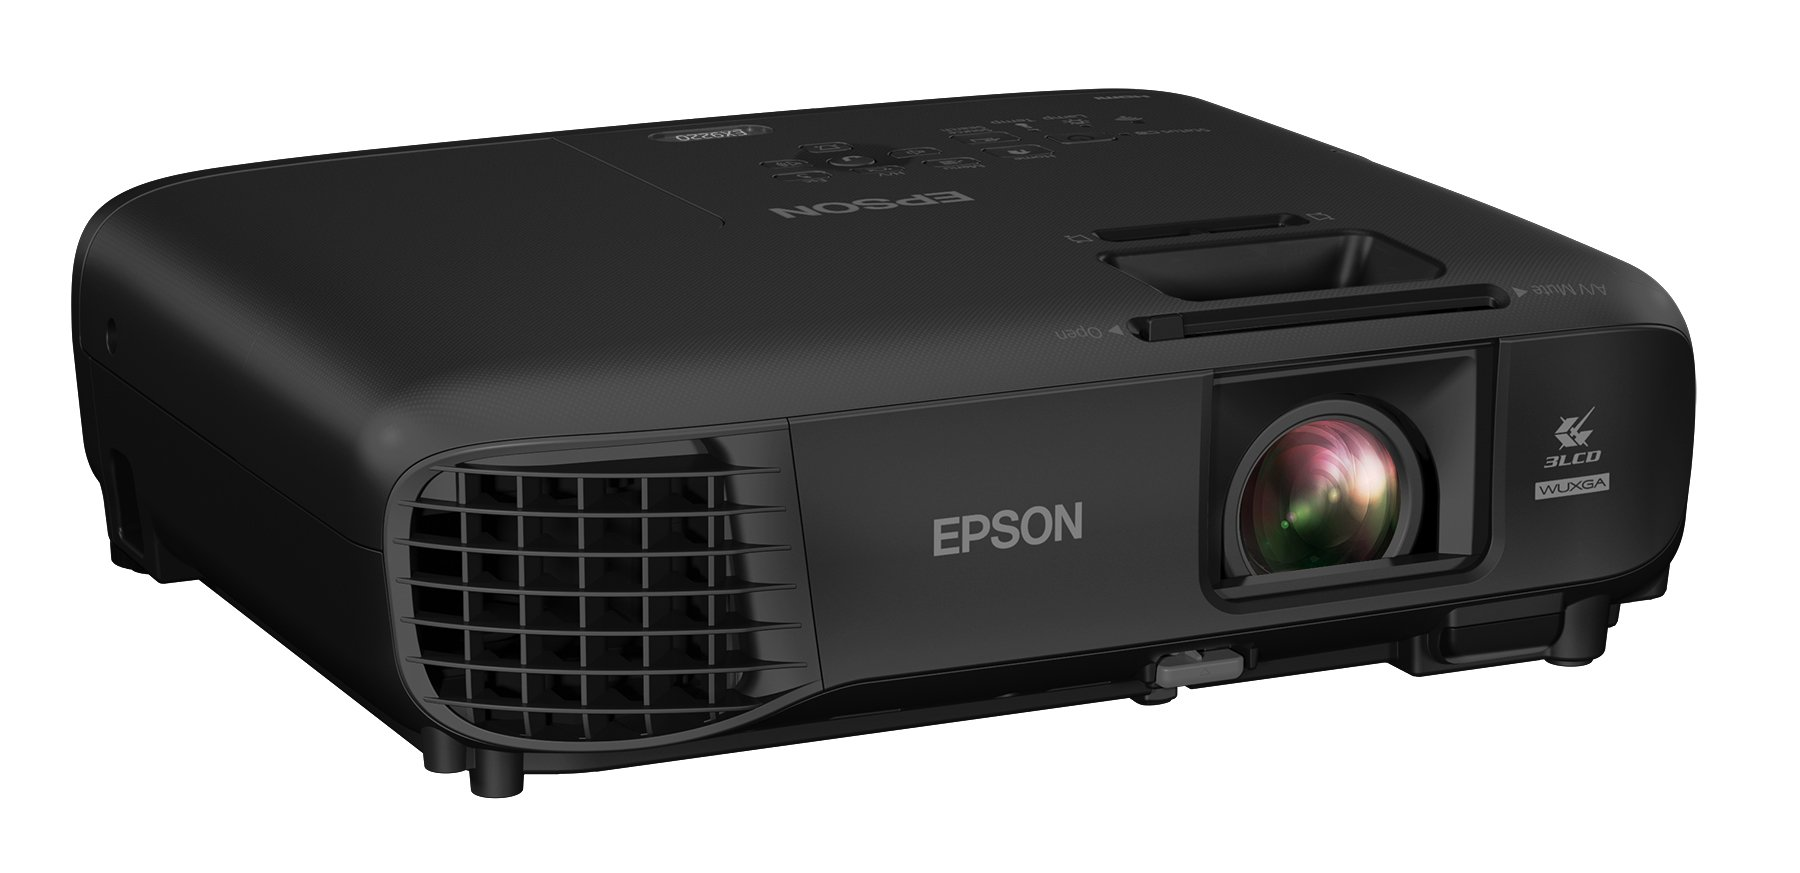 Epson Pro EX9220 1080p+ WUXGA 3,600 lumens color brightness (color light output) 3,600 lumens white brightness (white light output) wireless Miracast HDMI MHL 3LCD projector by Epson (Image #4)